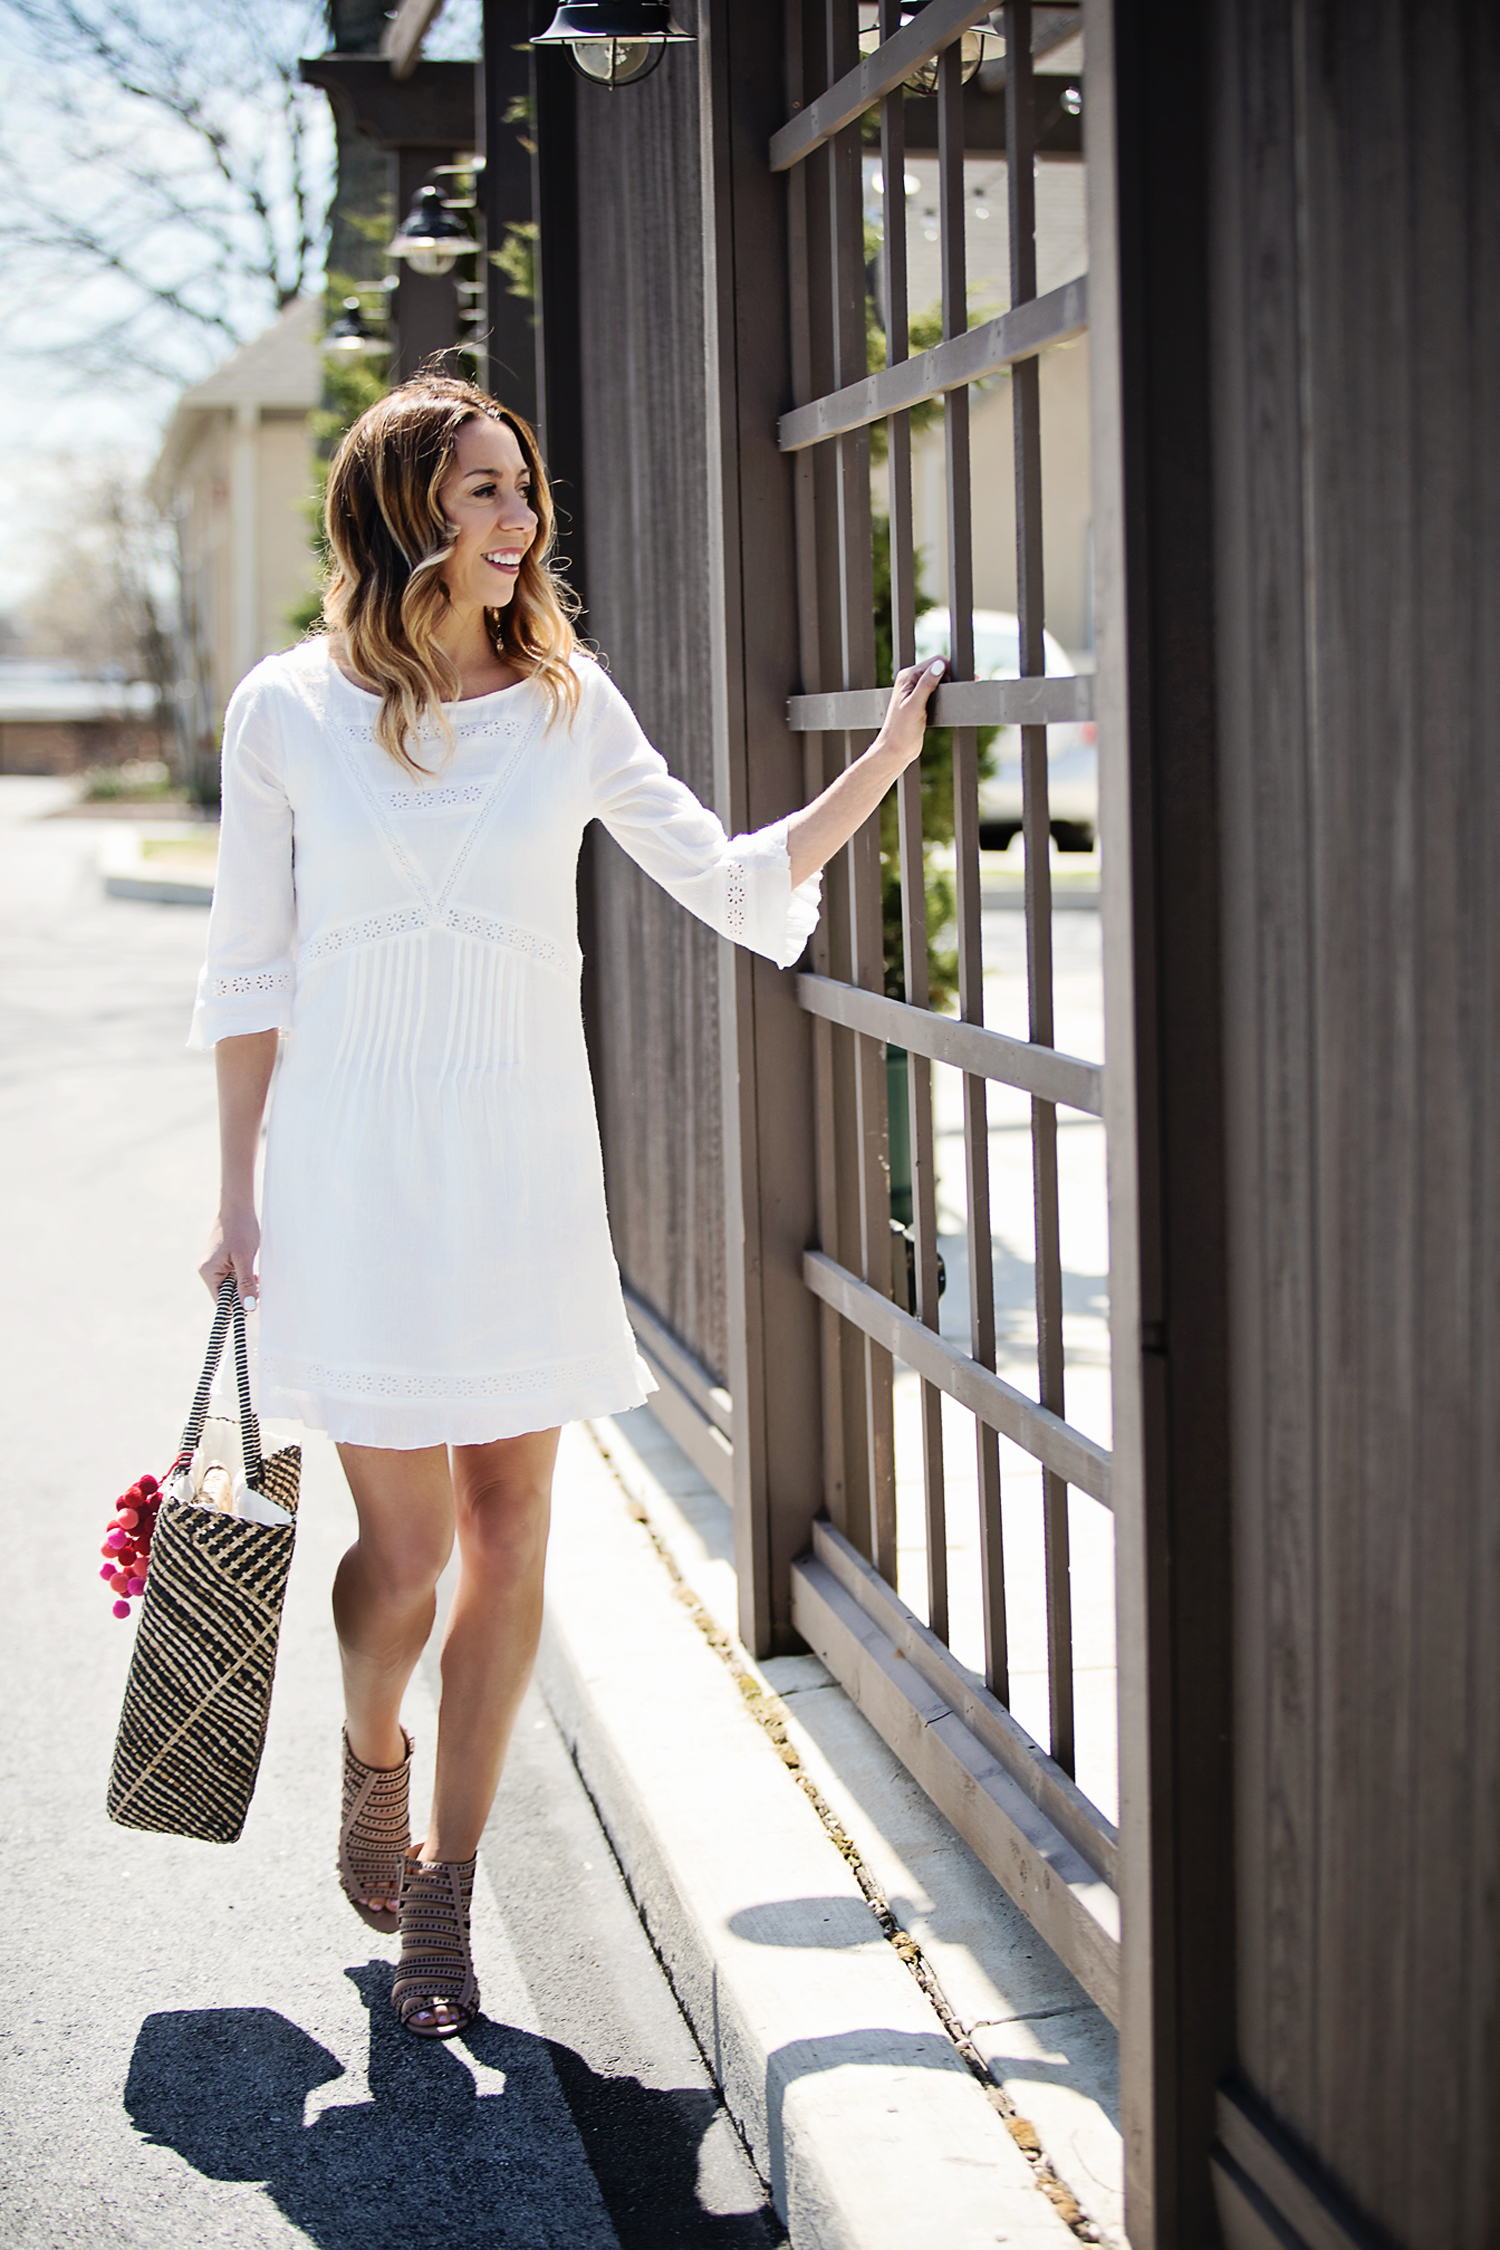 The Motherchic wearing sanctuary white dress from Macy's Friends and Family Sale